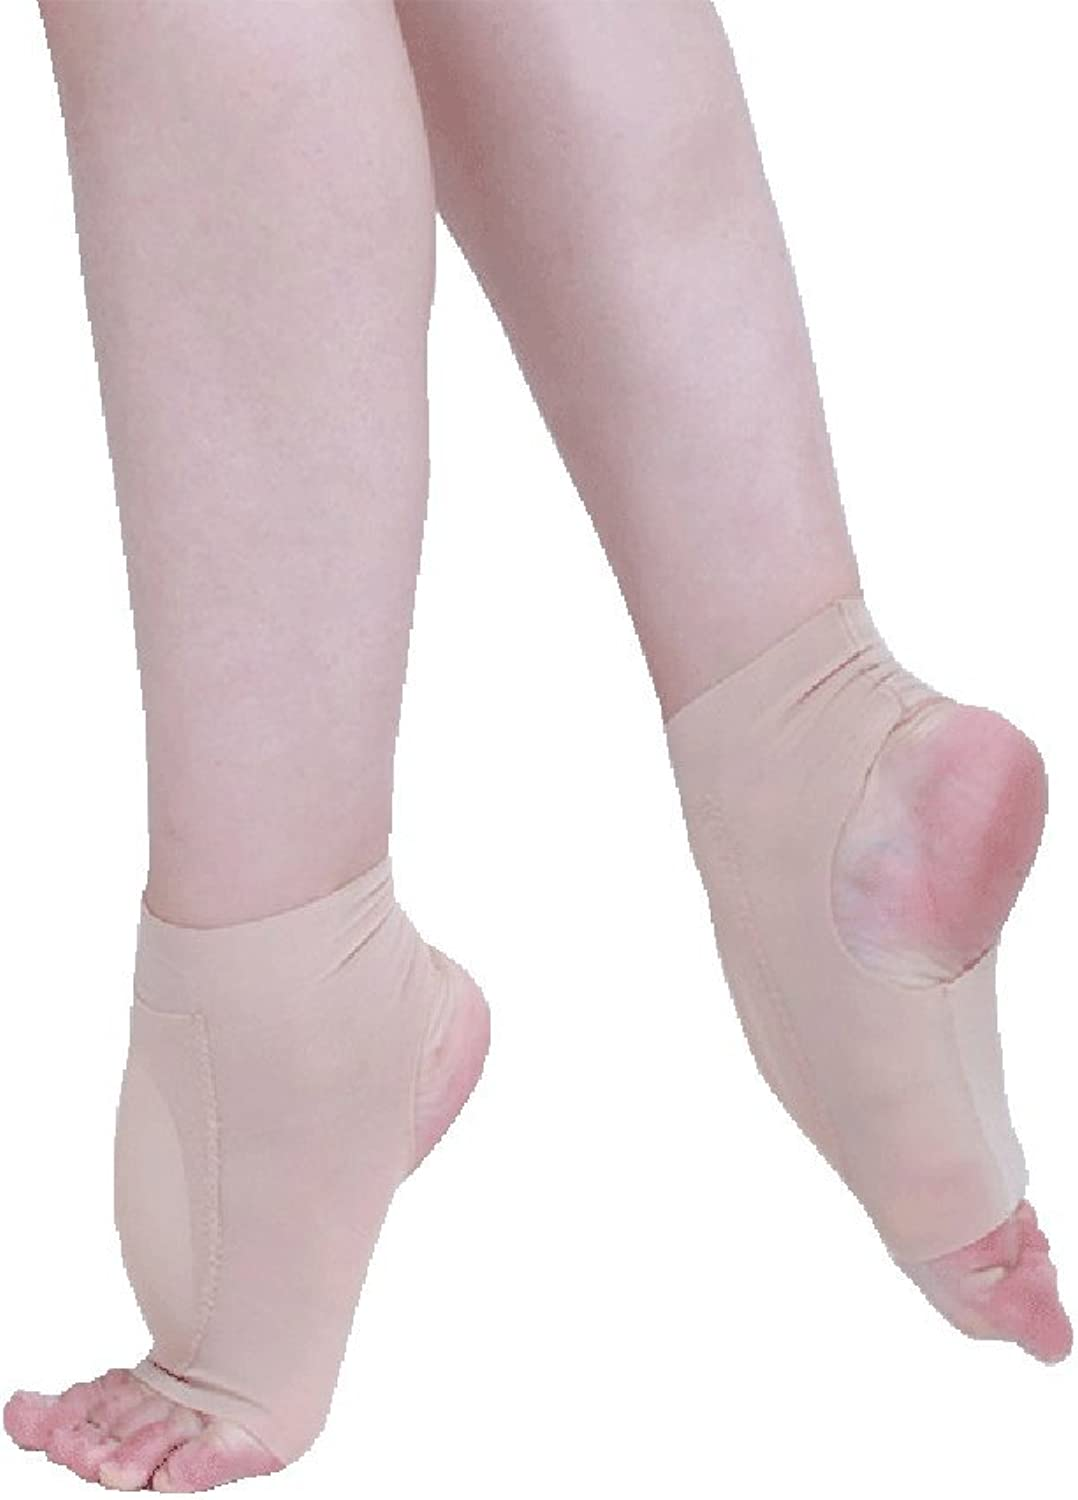 SHOLIND Womens Ballet Dancing Training Artistic Anti-Friction Silicone Instep Cushion shoes